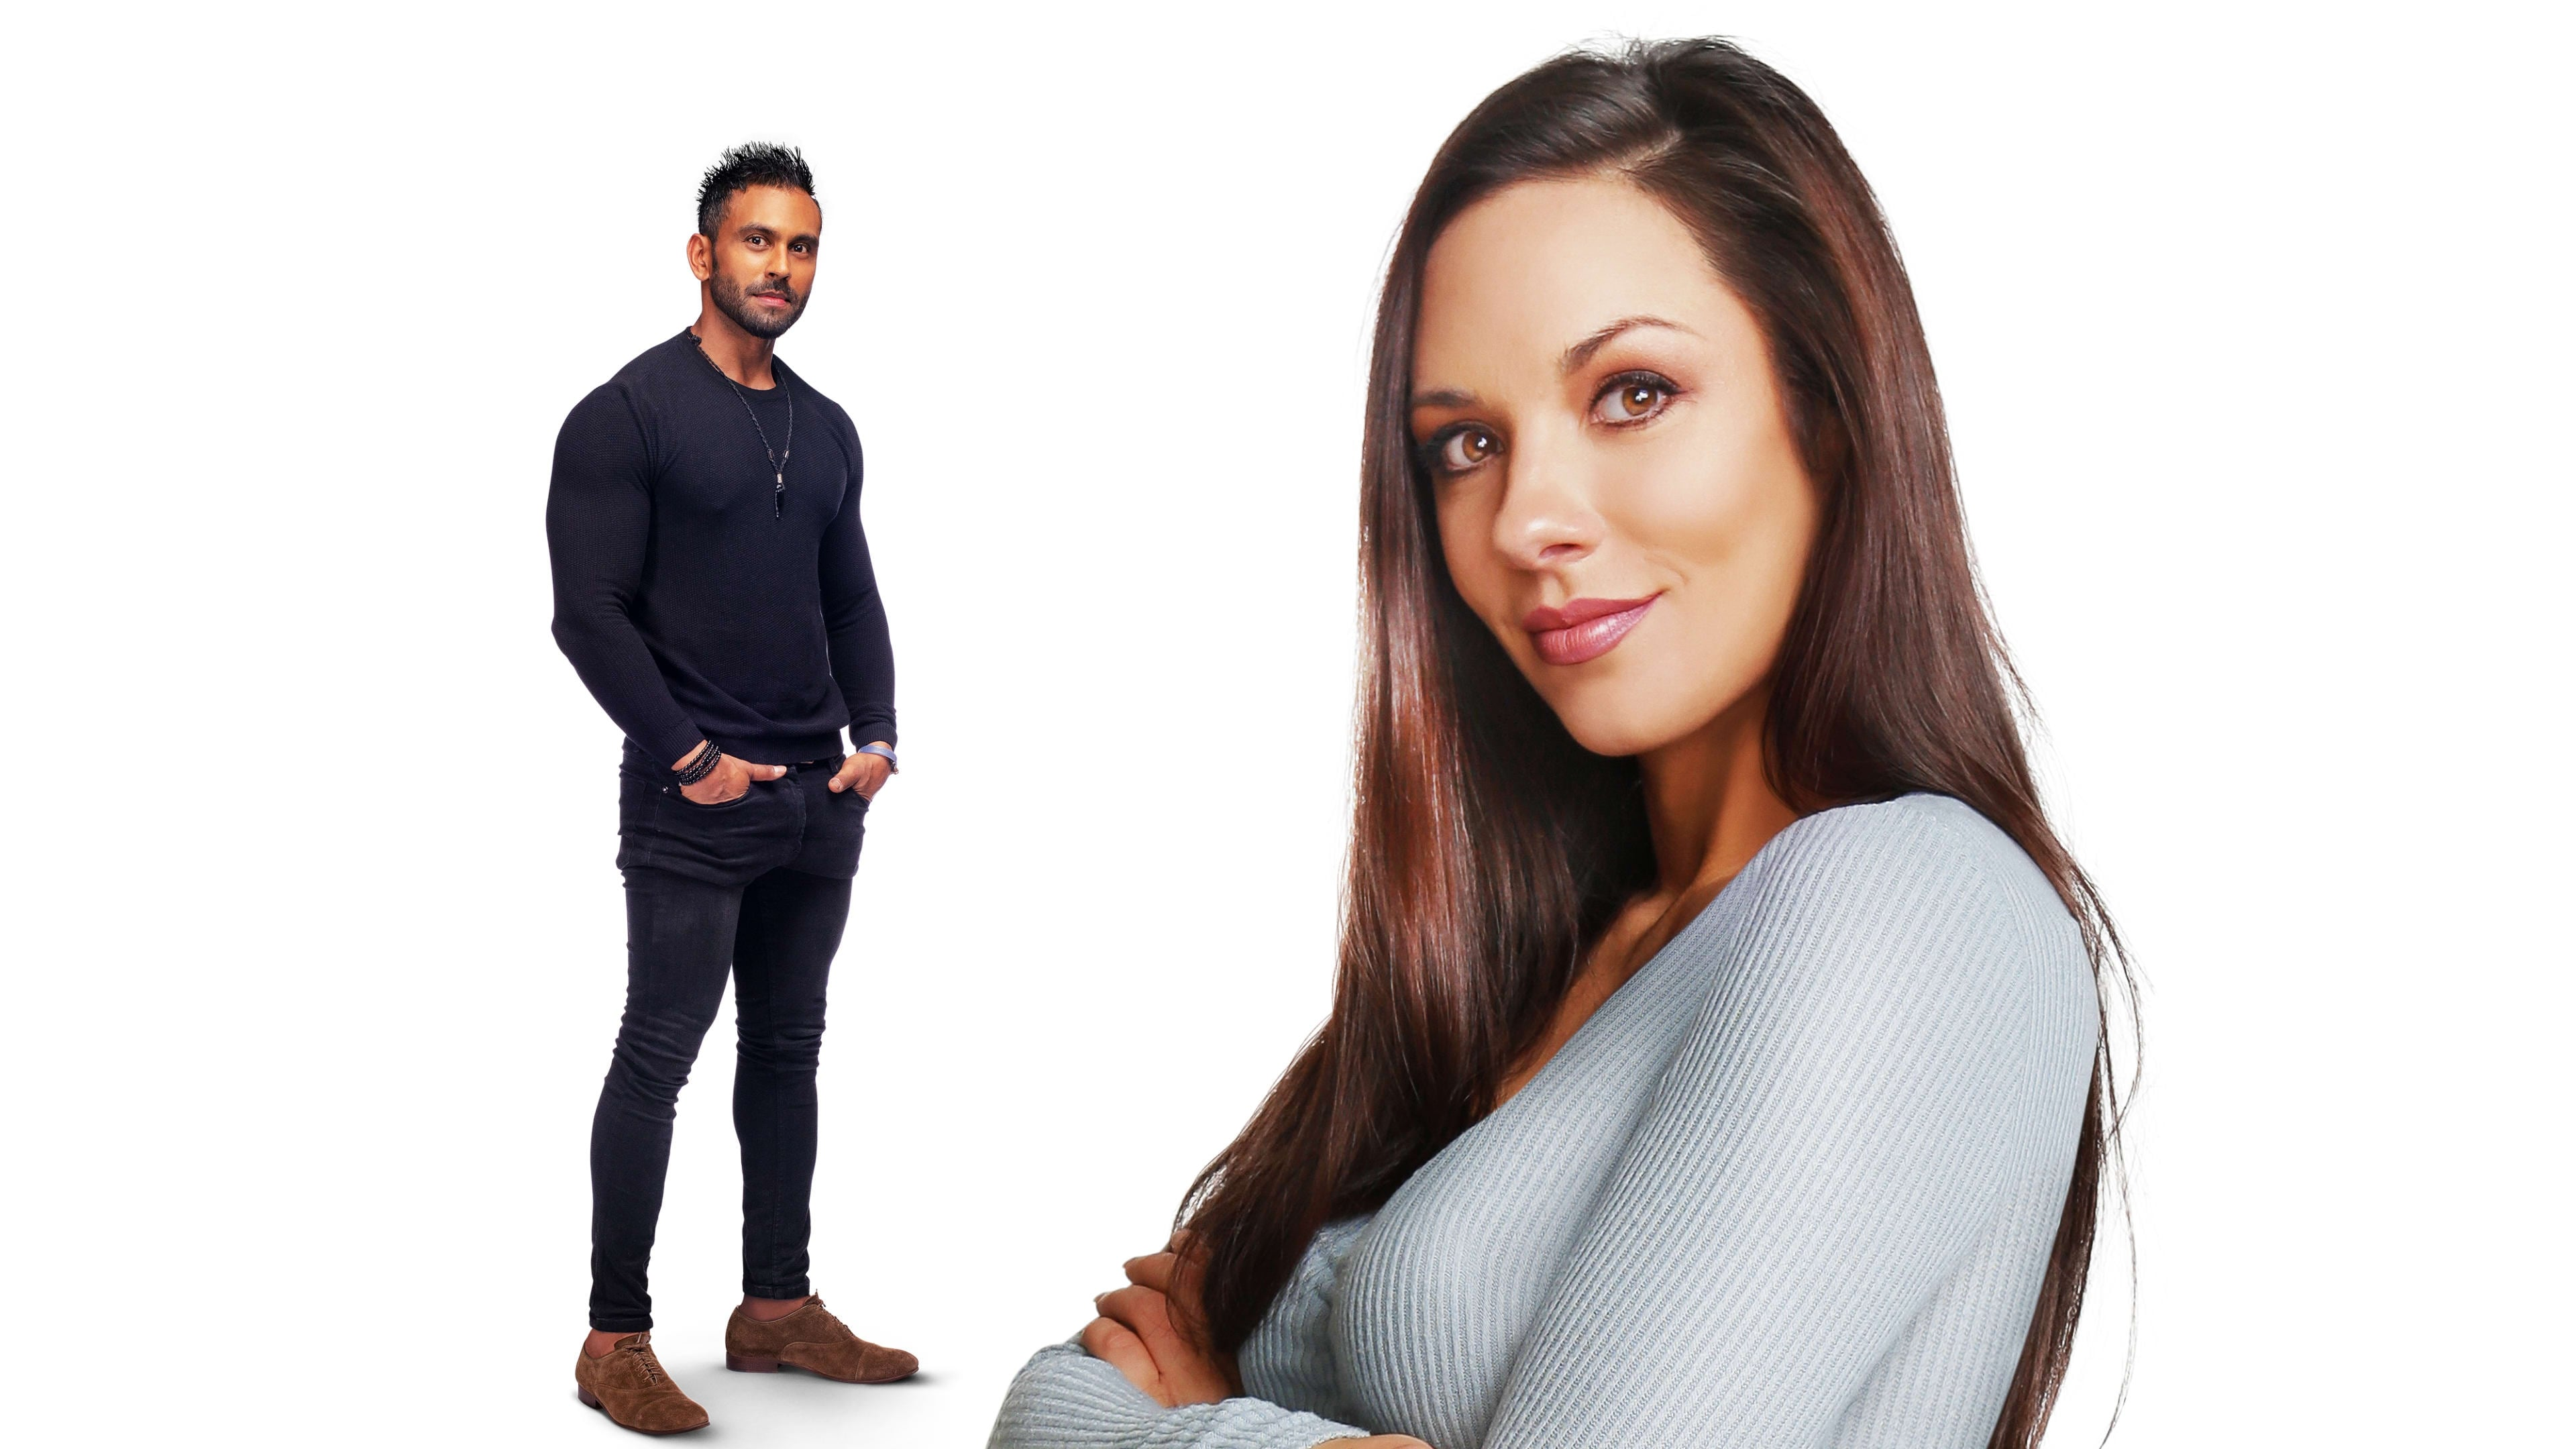 90 Day Fiancé: Before the 90 Days - Season 4 Episode 11 : Private Eyes